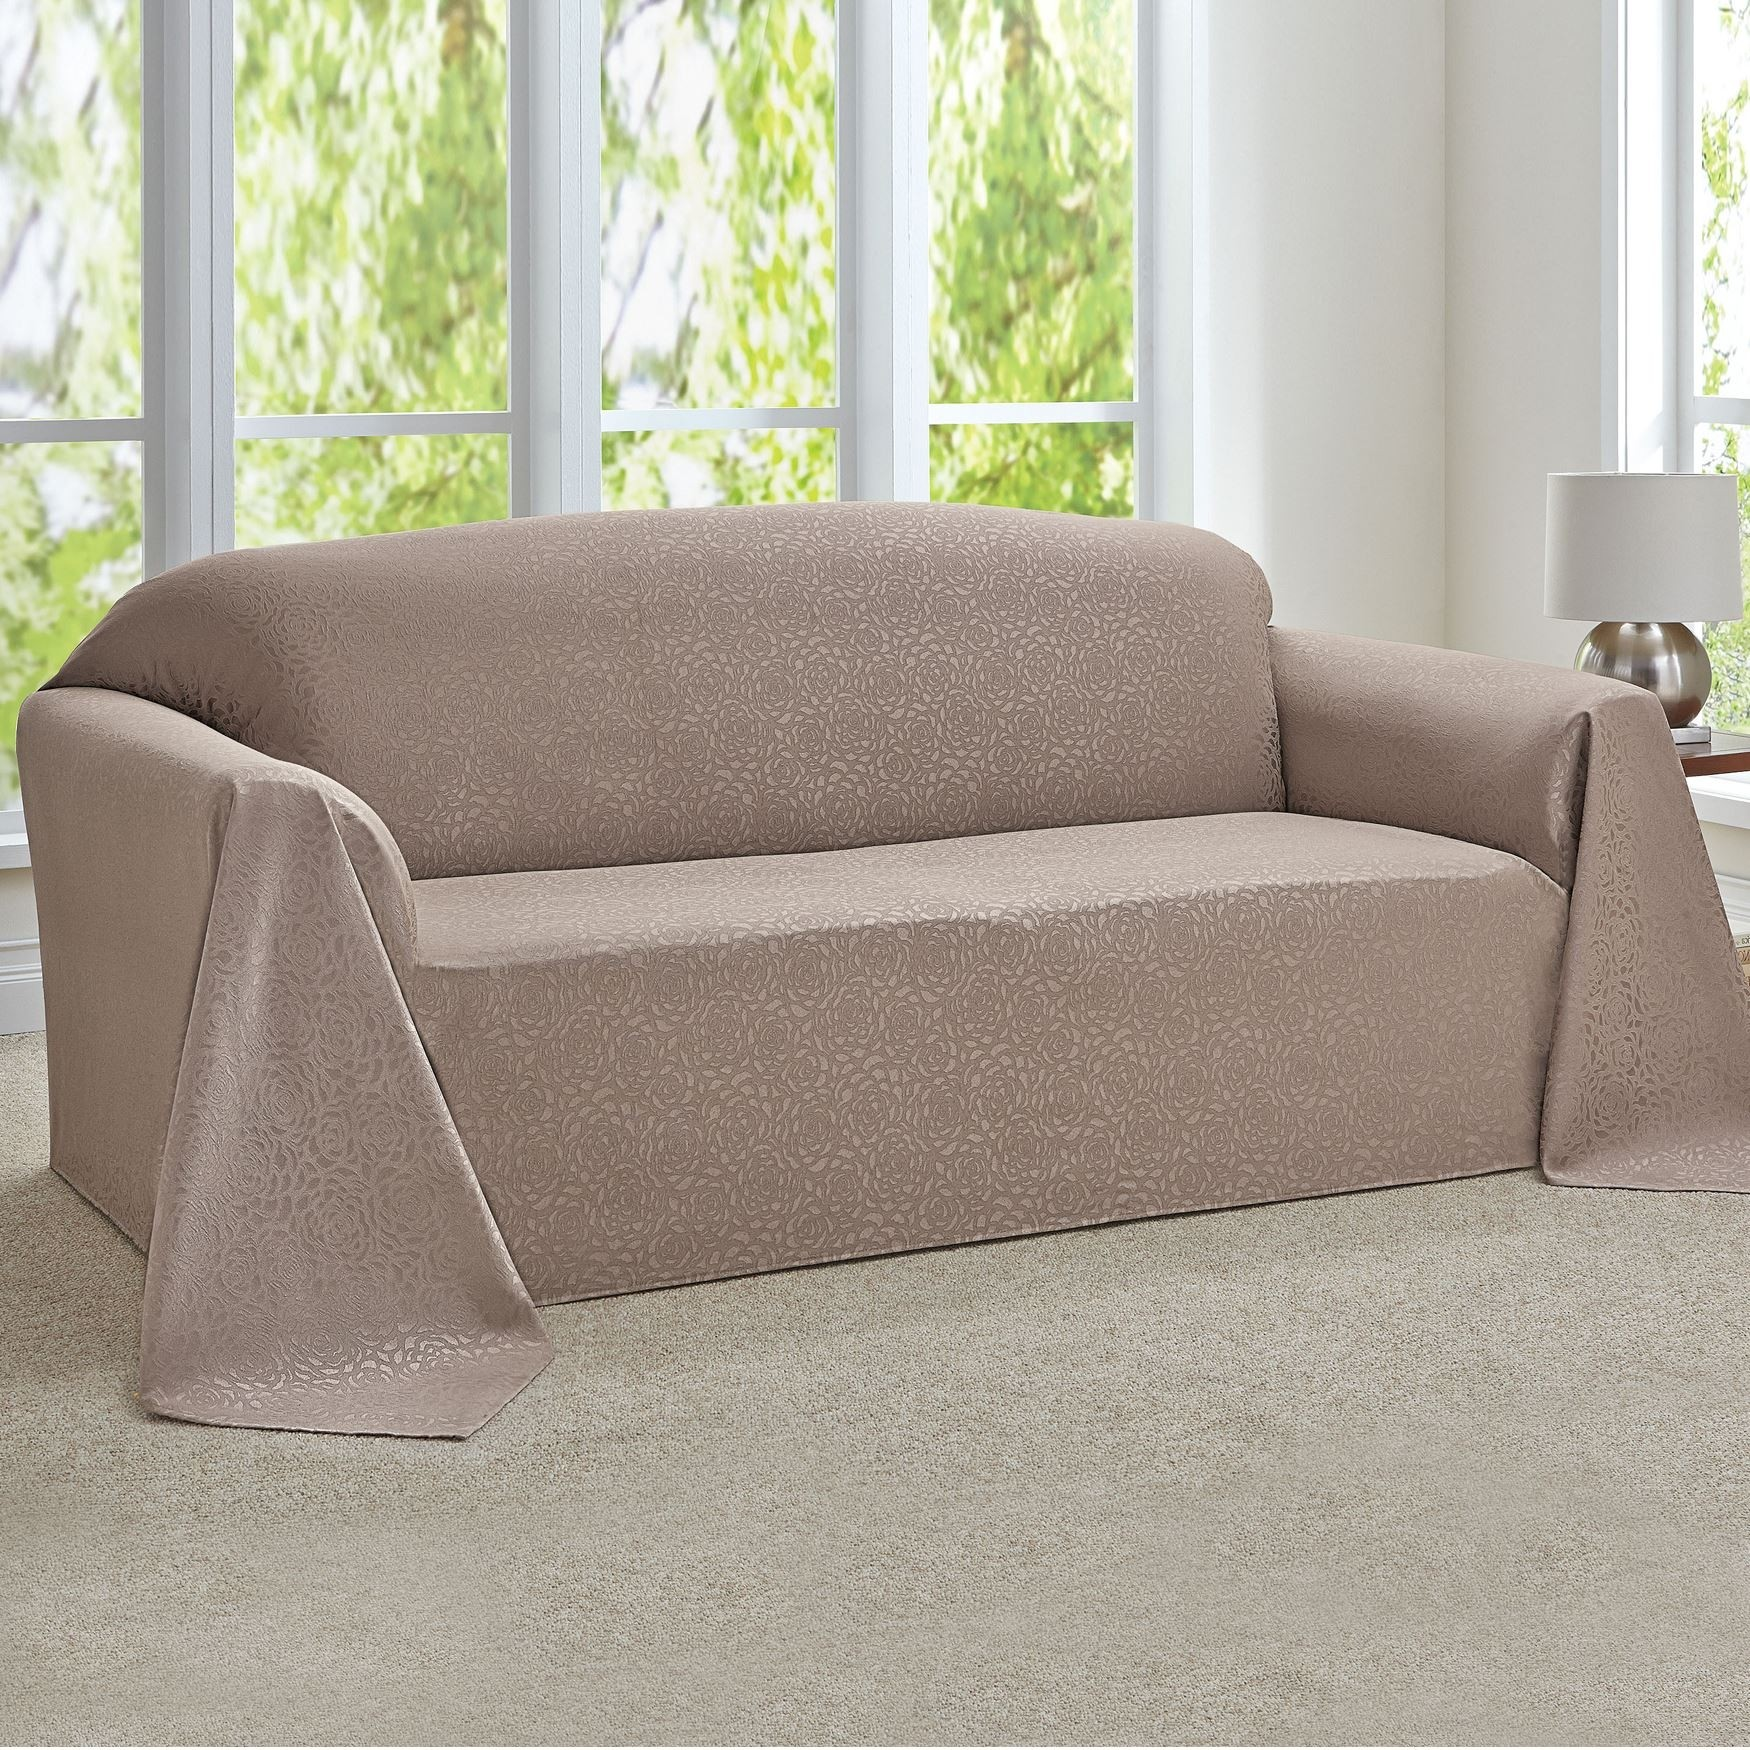 Sofa Throw Covers Elegant Extra Long sofa Throw Cover Pinterest Collection